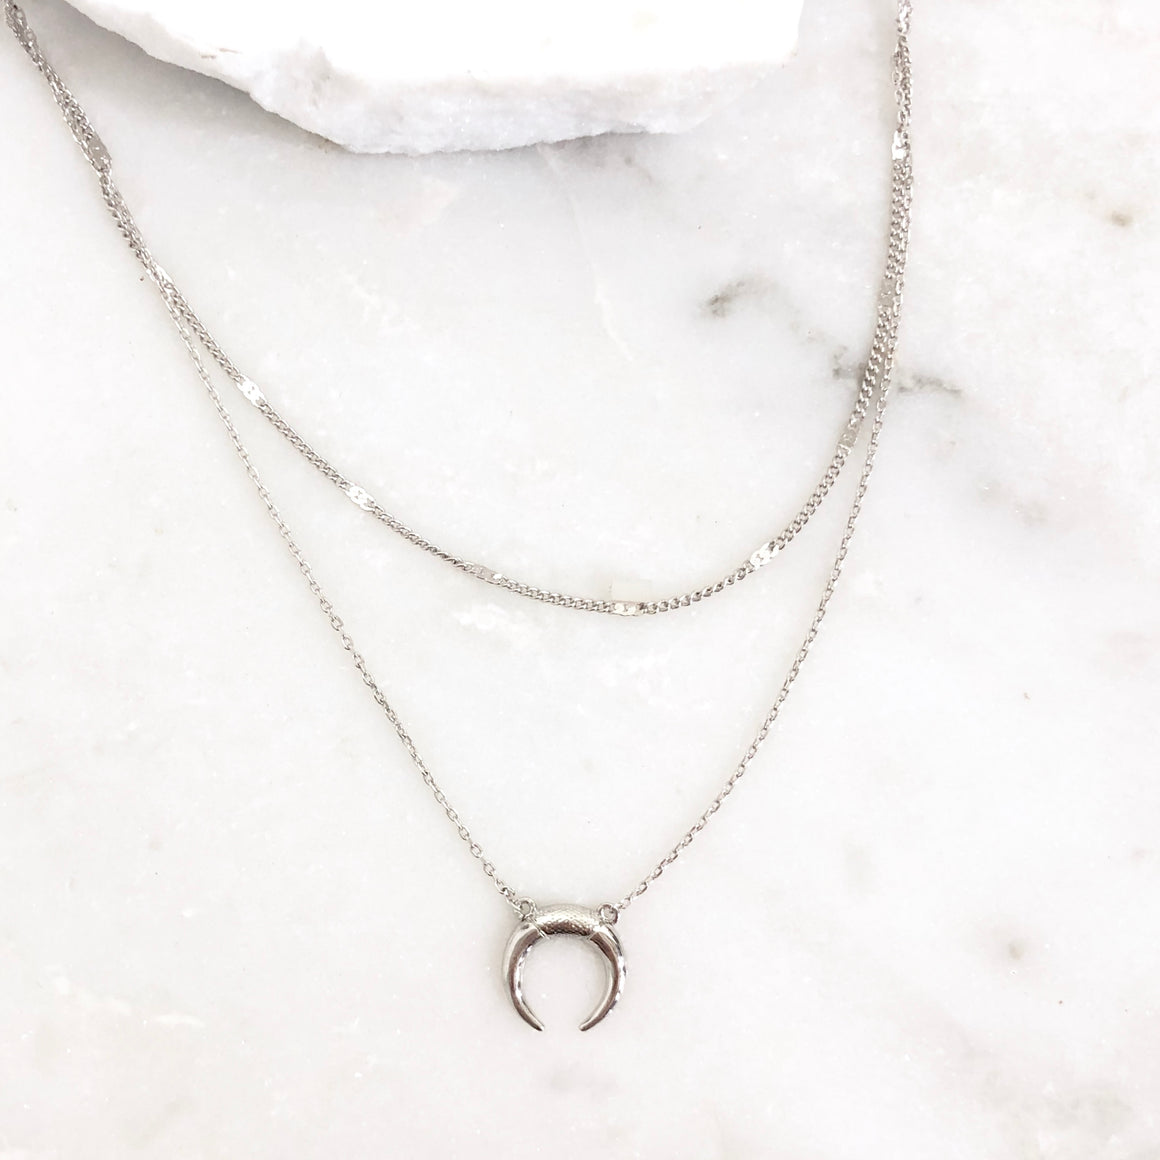 Bandit Silver Dainty Necklace